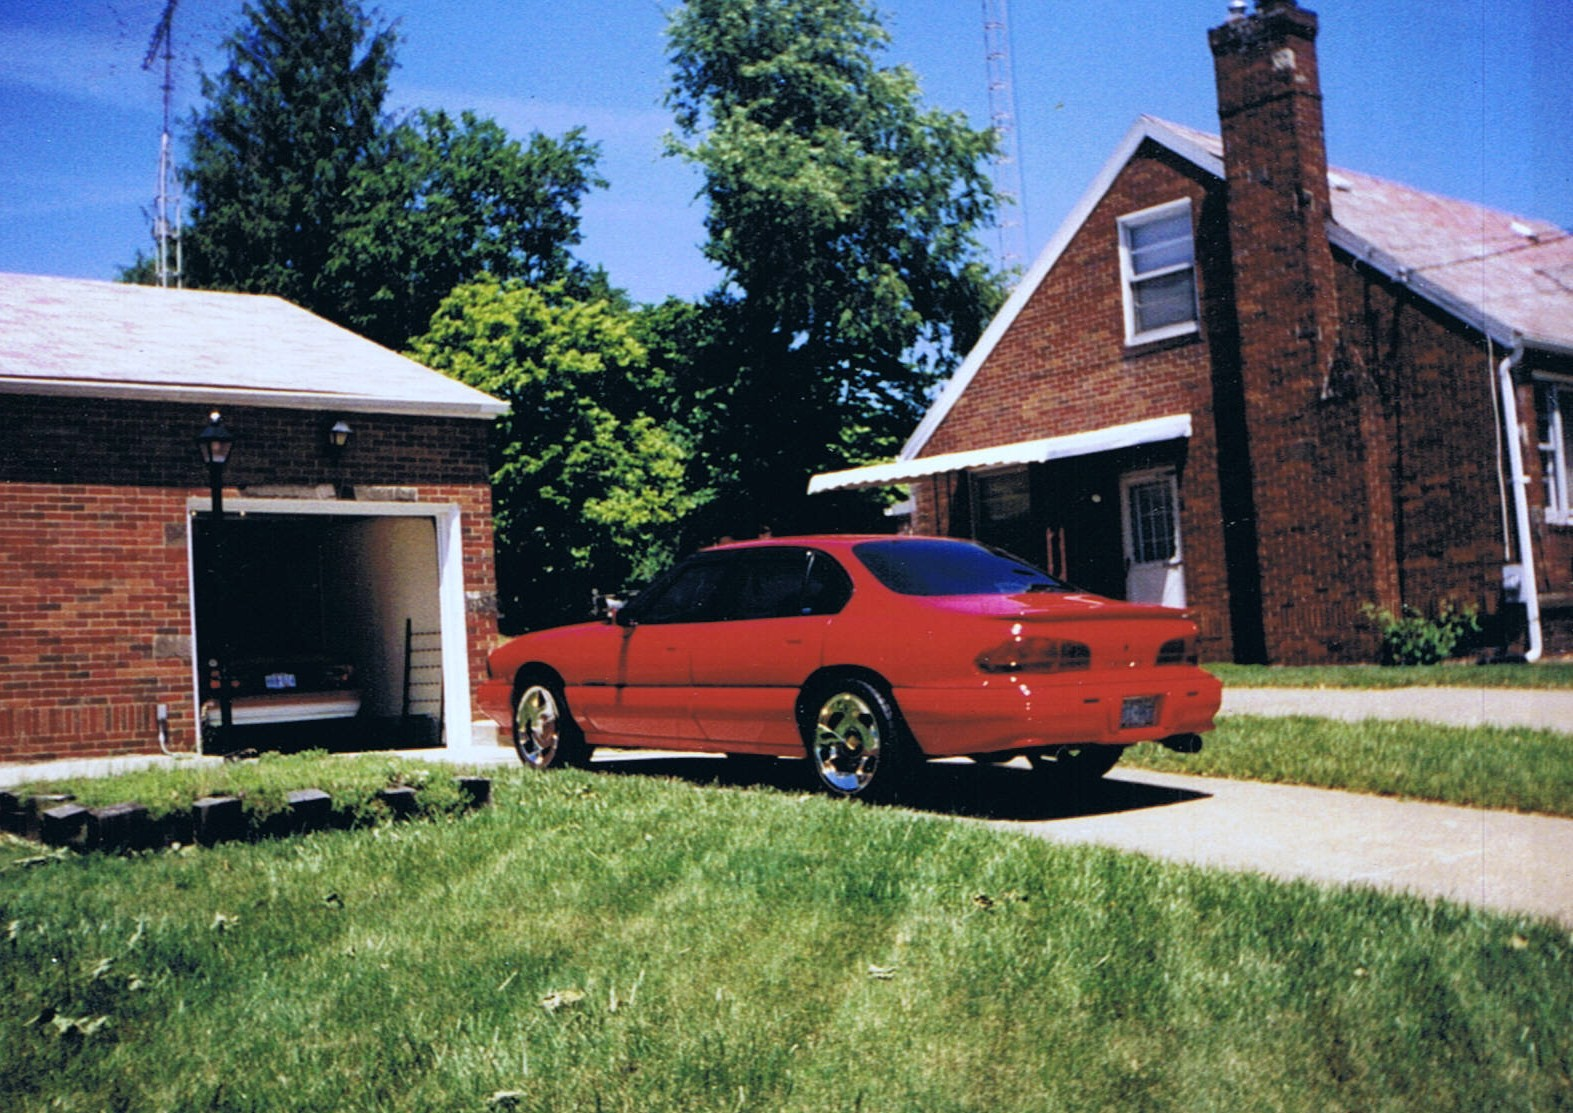 1995 Pontiac Bonneville 4 Dr SE Supercharged Sedan - Pictures - 1995 ...